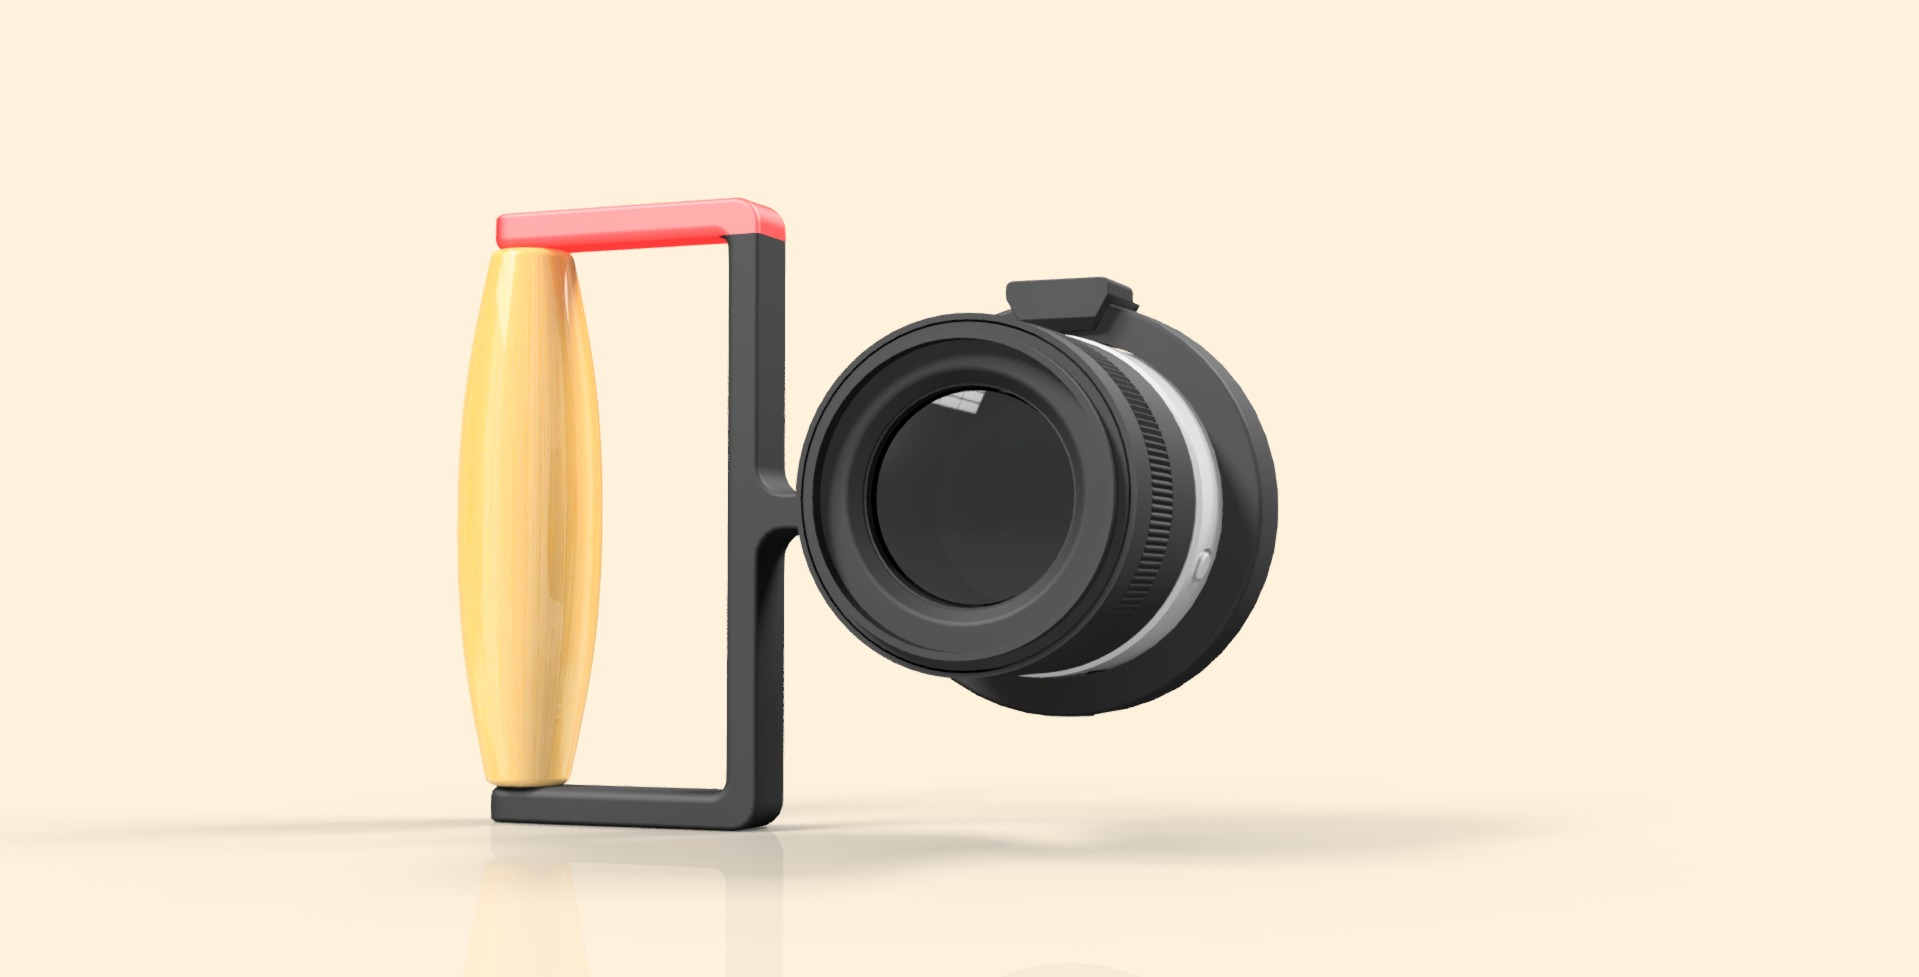 Rt_front_low_wo_phone_holder